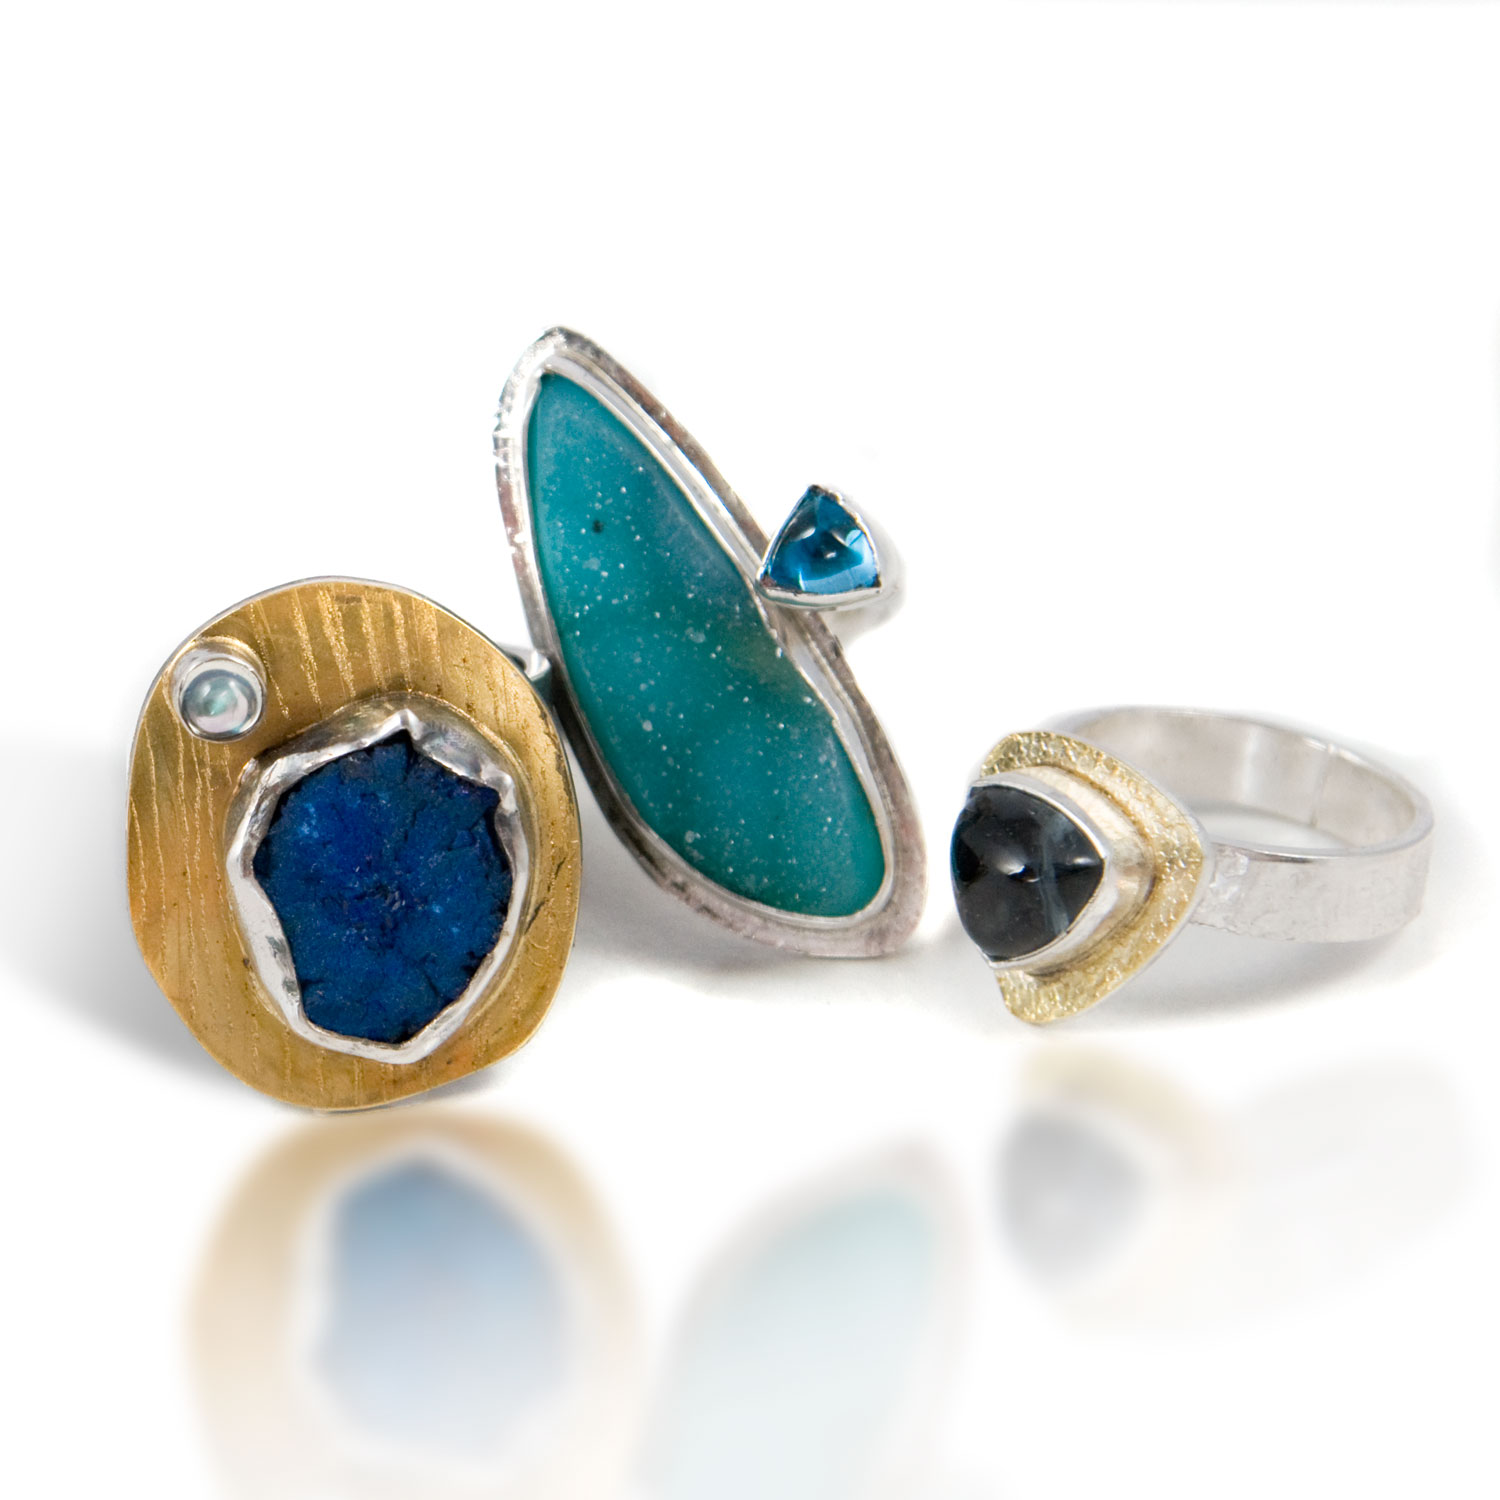 From left to right...azurite and moonstone ring, Ocean dreams ring (drusy and topaz) and Blue Tourmaline trillion ring.